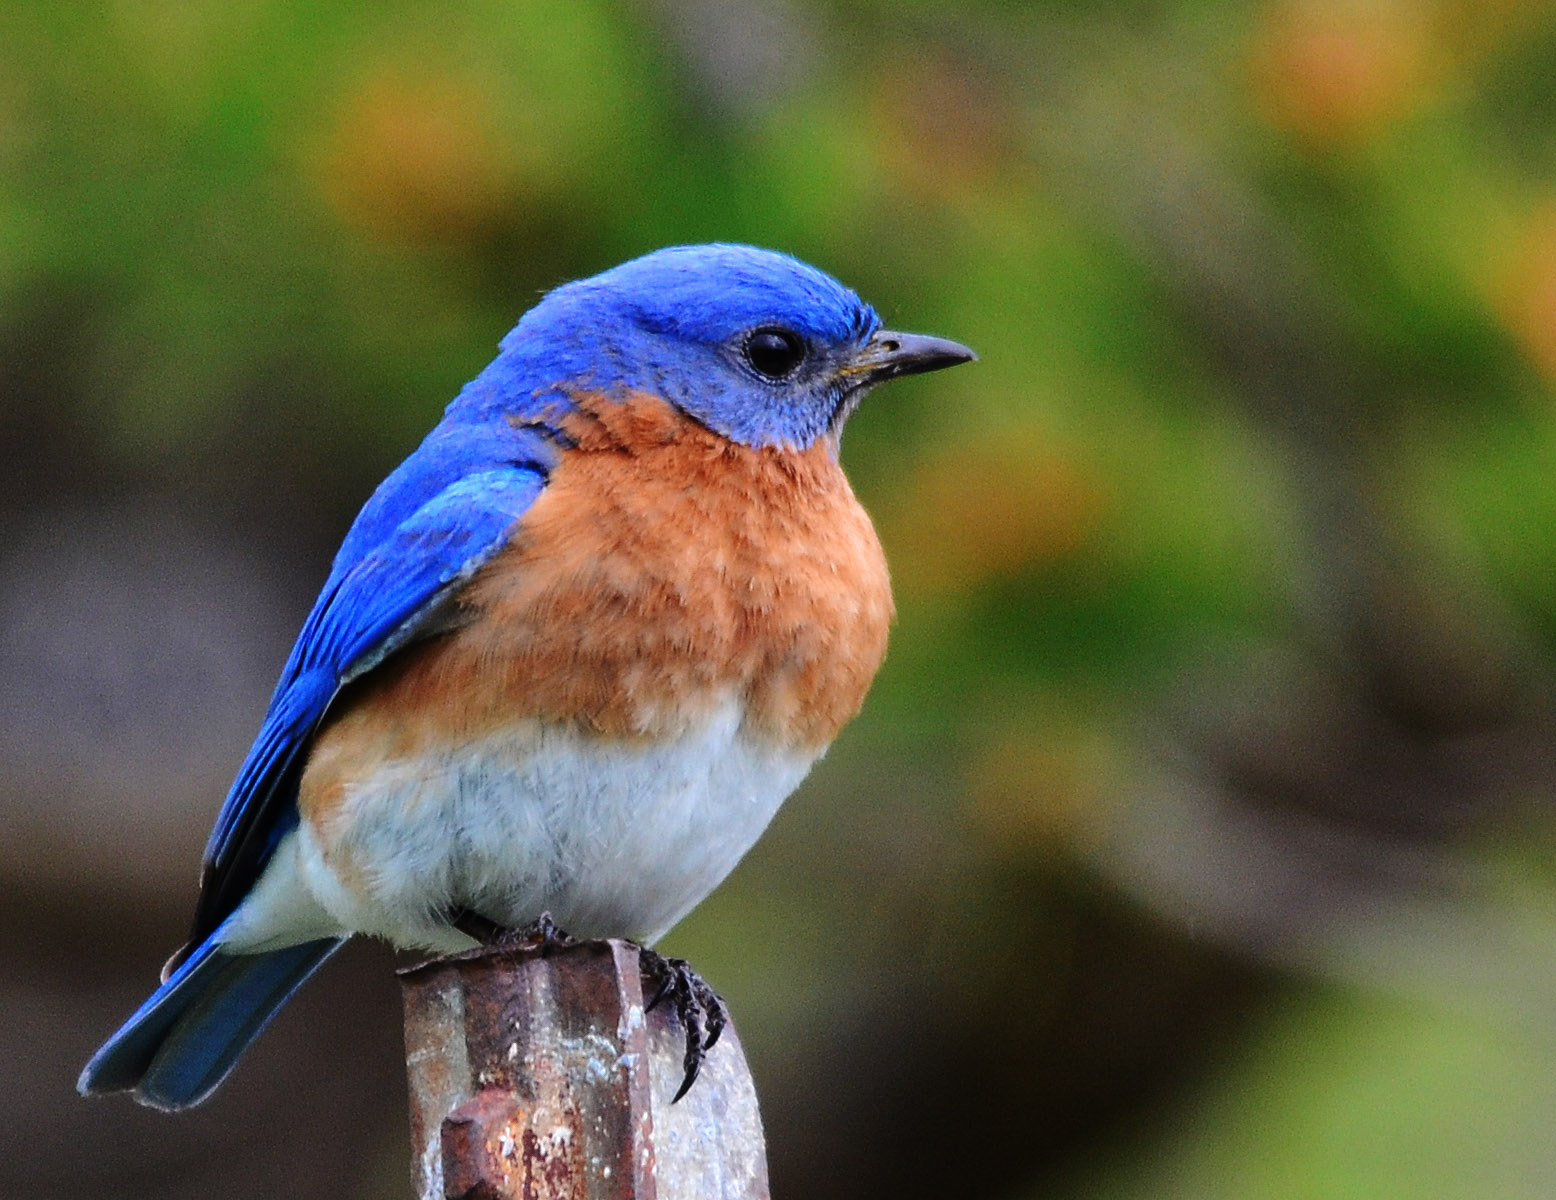 Blue bird - photo#12